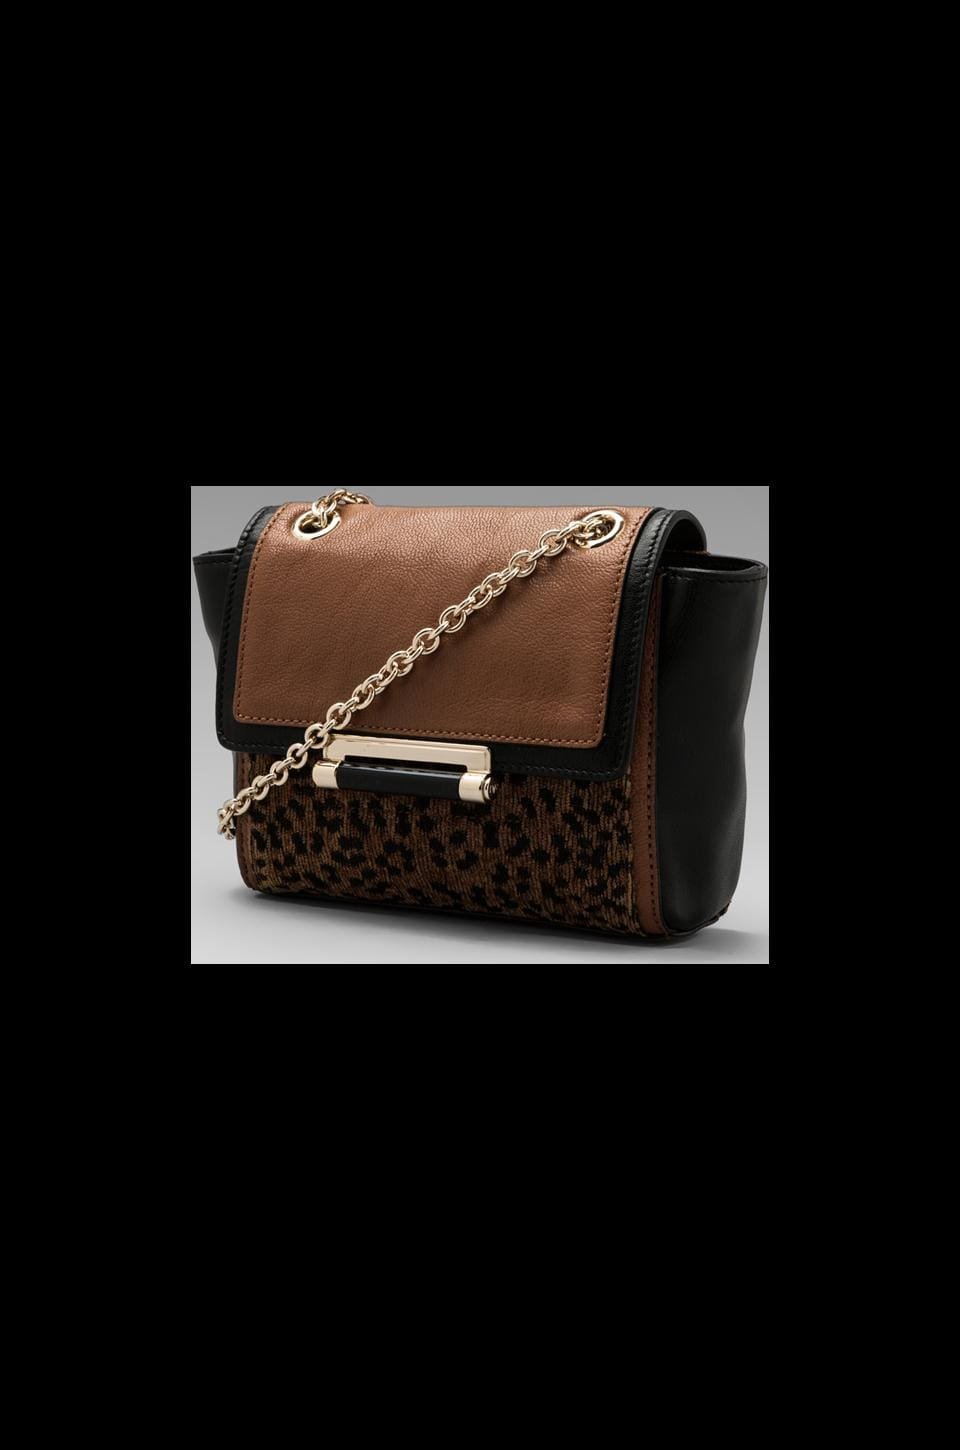 Diane von Furstenberg Mini Leopard Jacquard Bag in Brown/Black